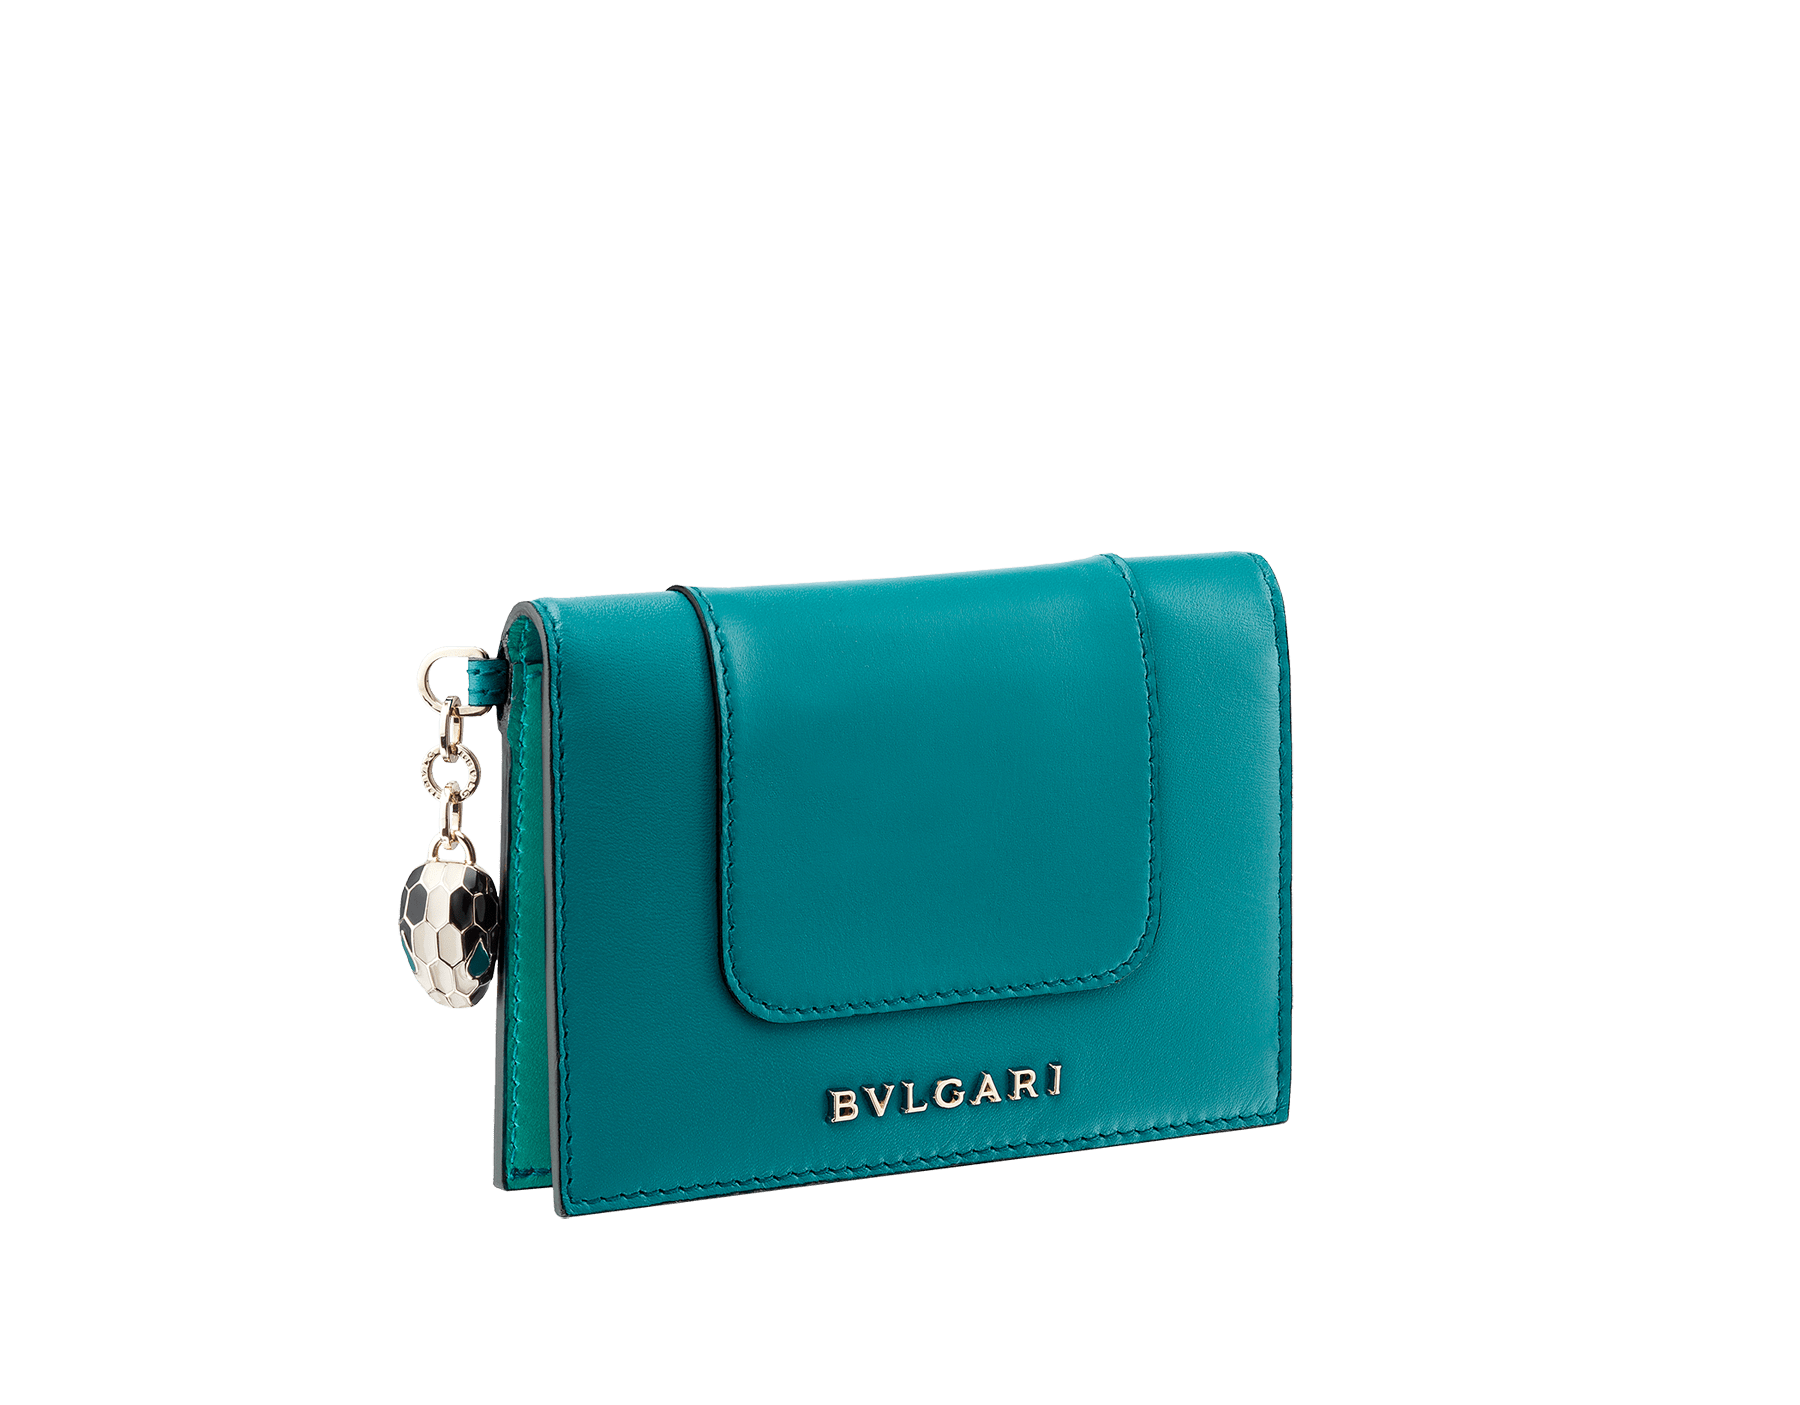 Serpenti Forever folded credit card holder in glacier turquoise calf leather. Iconic snakehead charm in black and white enamel, with green malachite enamel eyes. SEA-CC-HOLDER-FOLD-CLd image 1